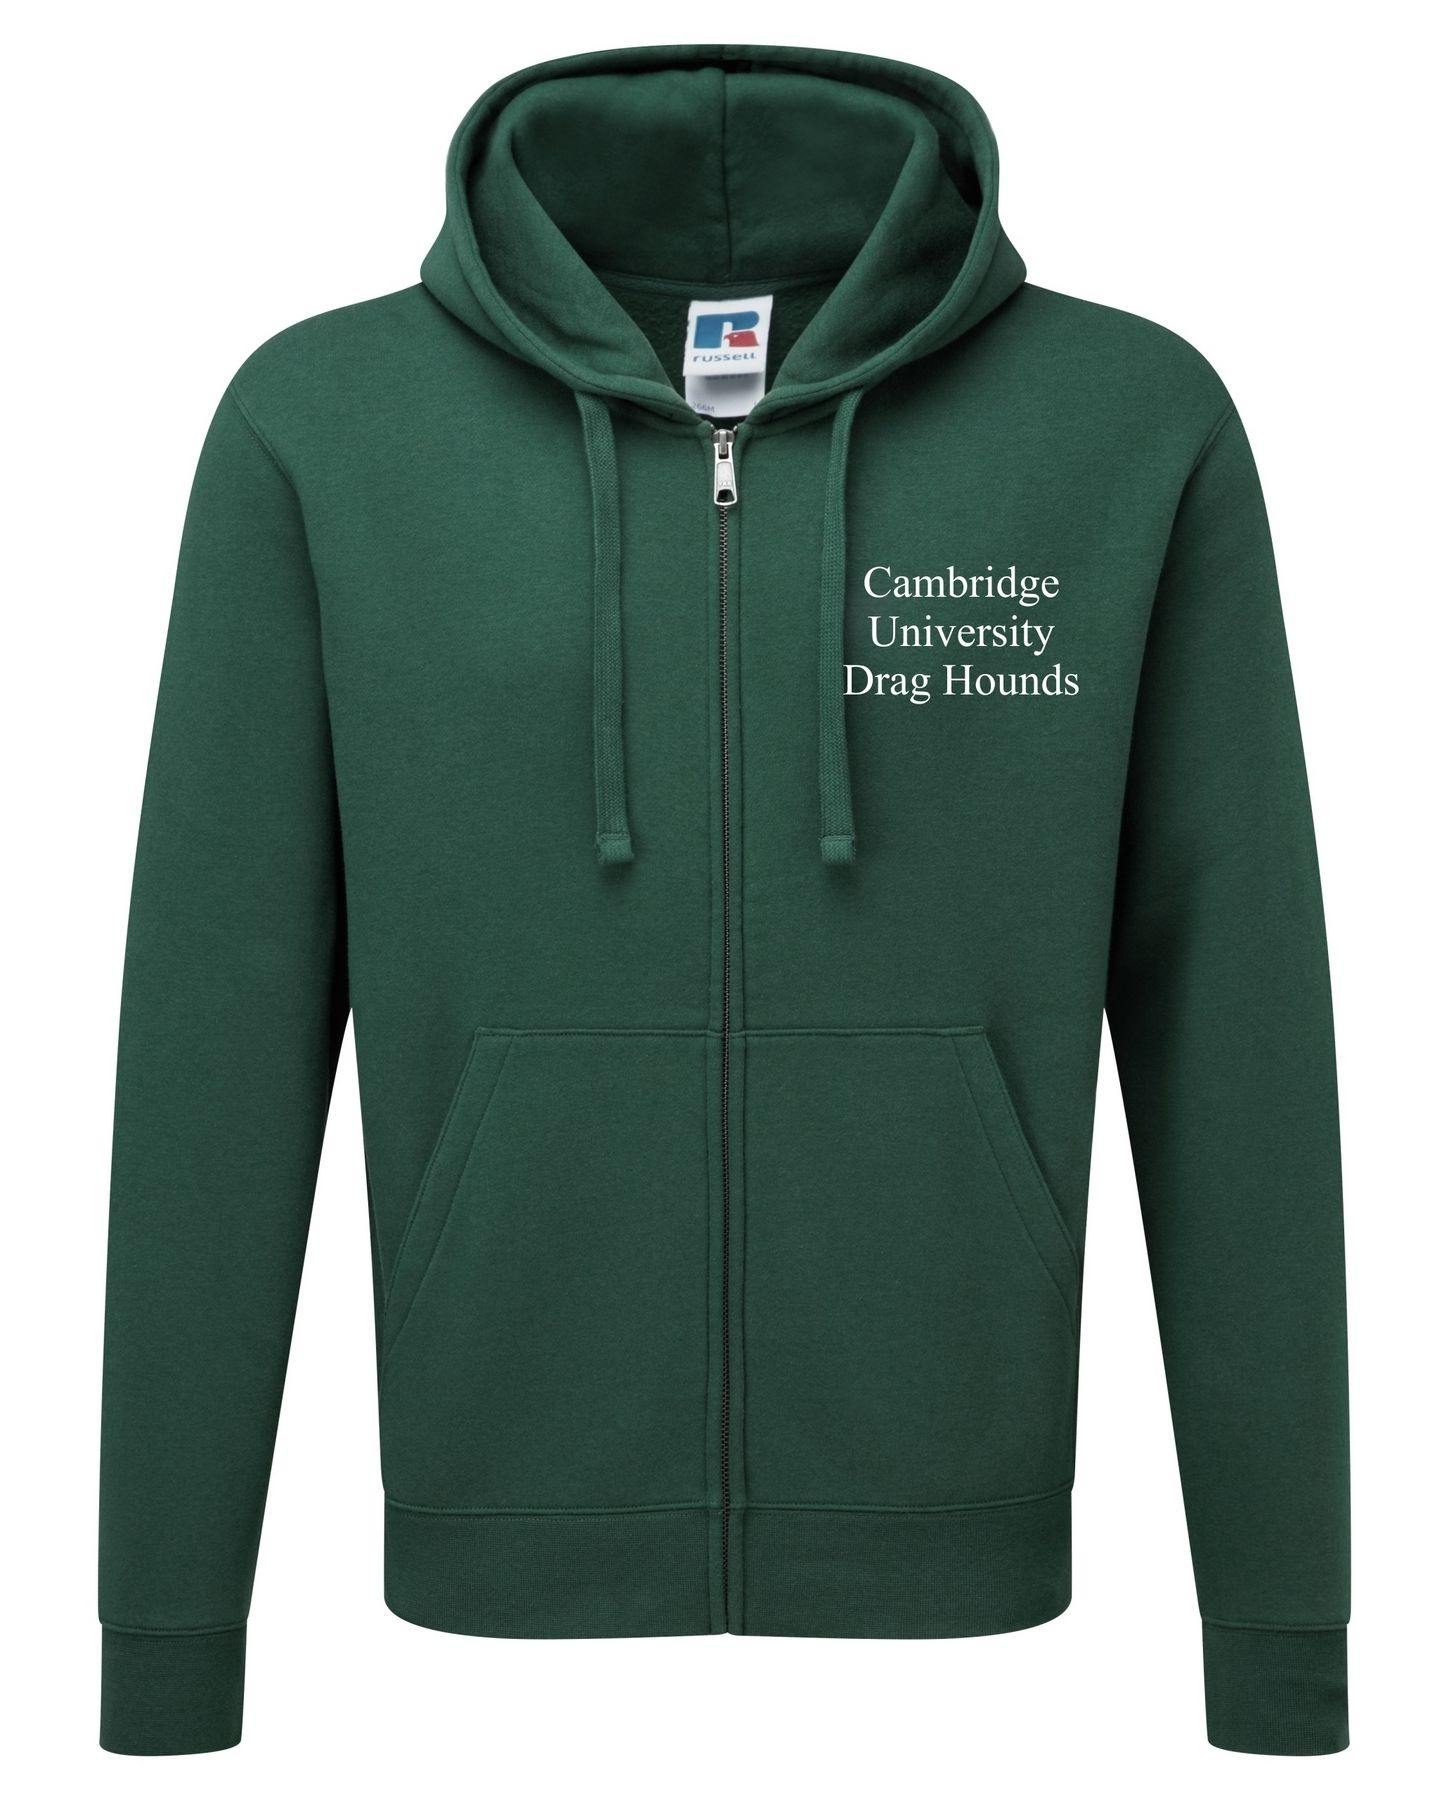 CUDH – Premium Authentic Zipped Hoodie